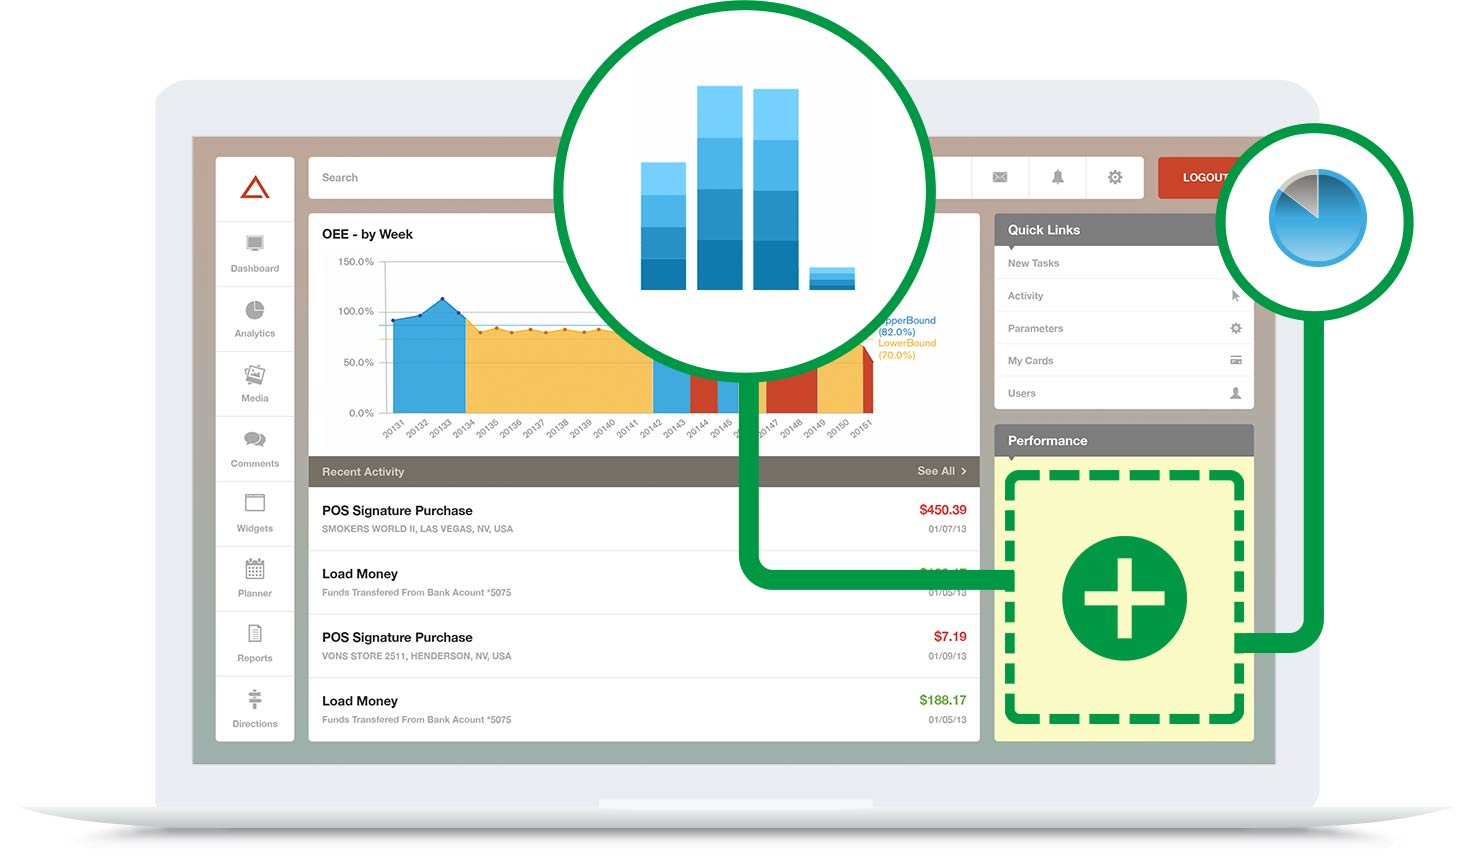 Qlik Analytics